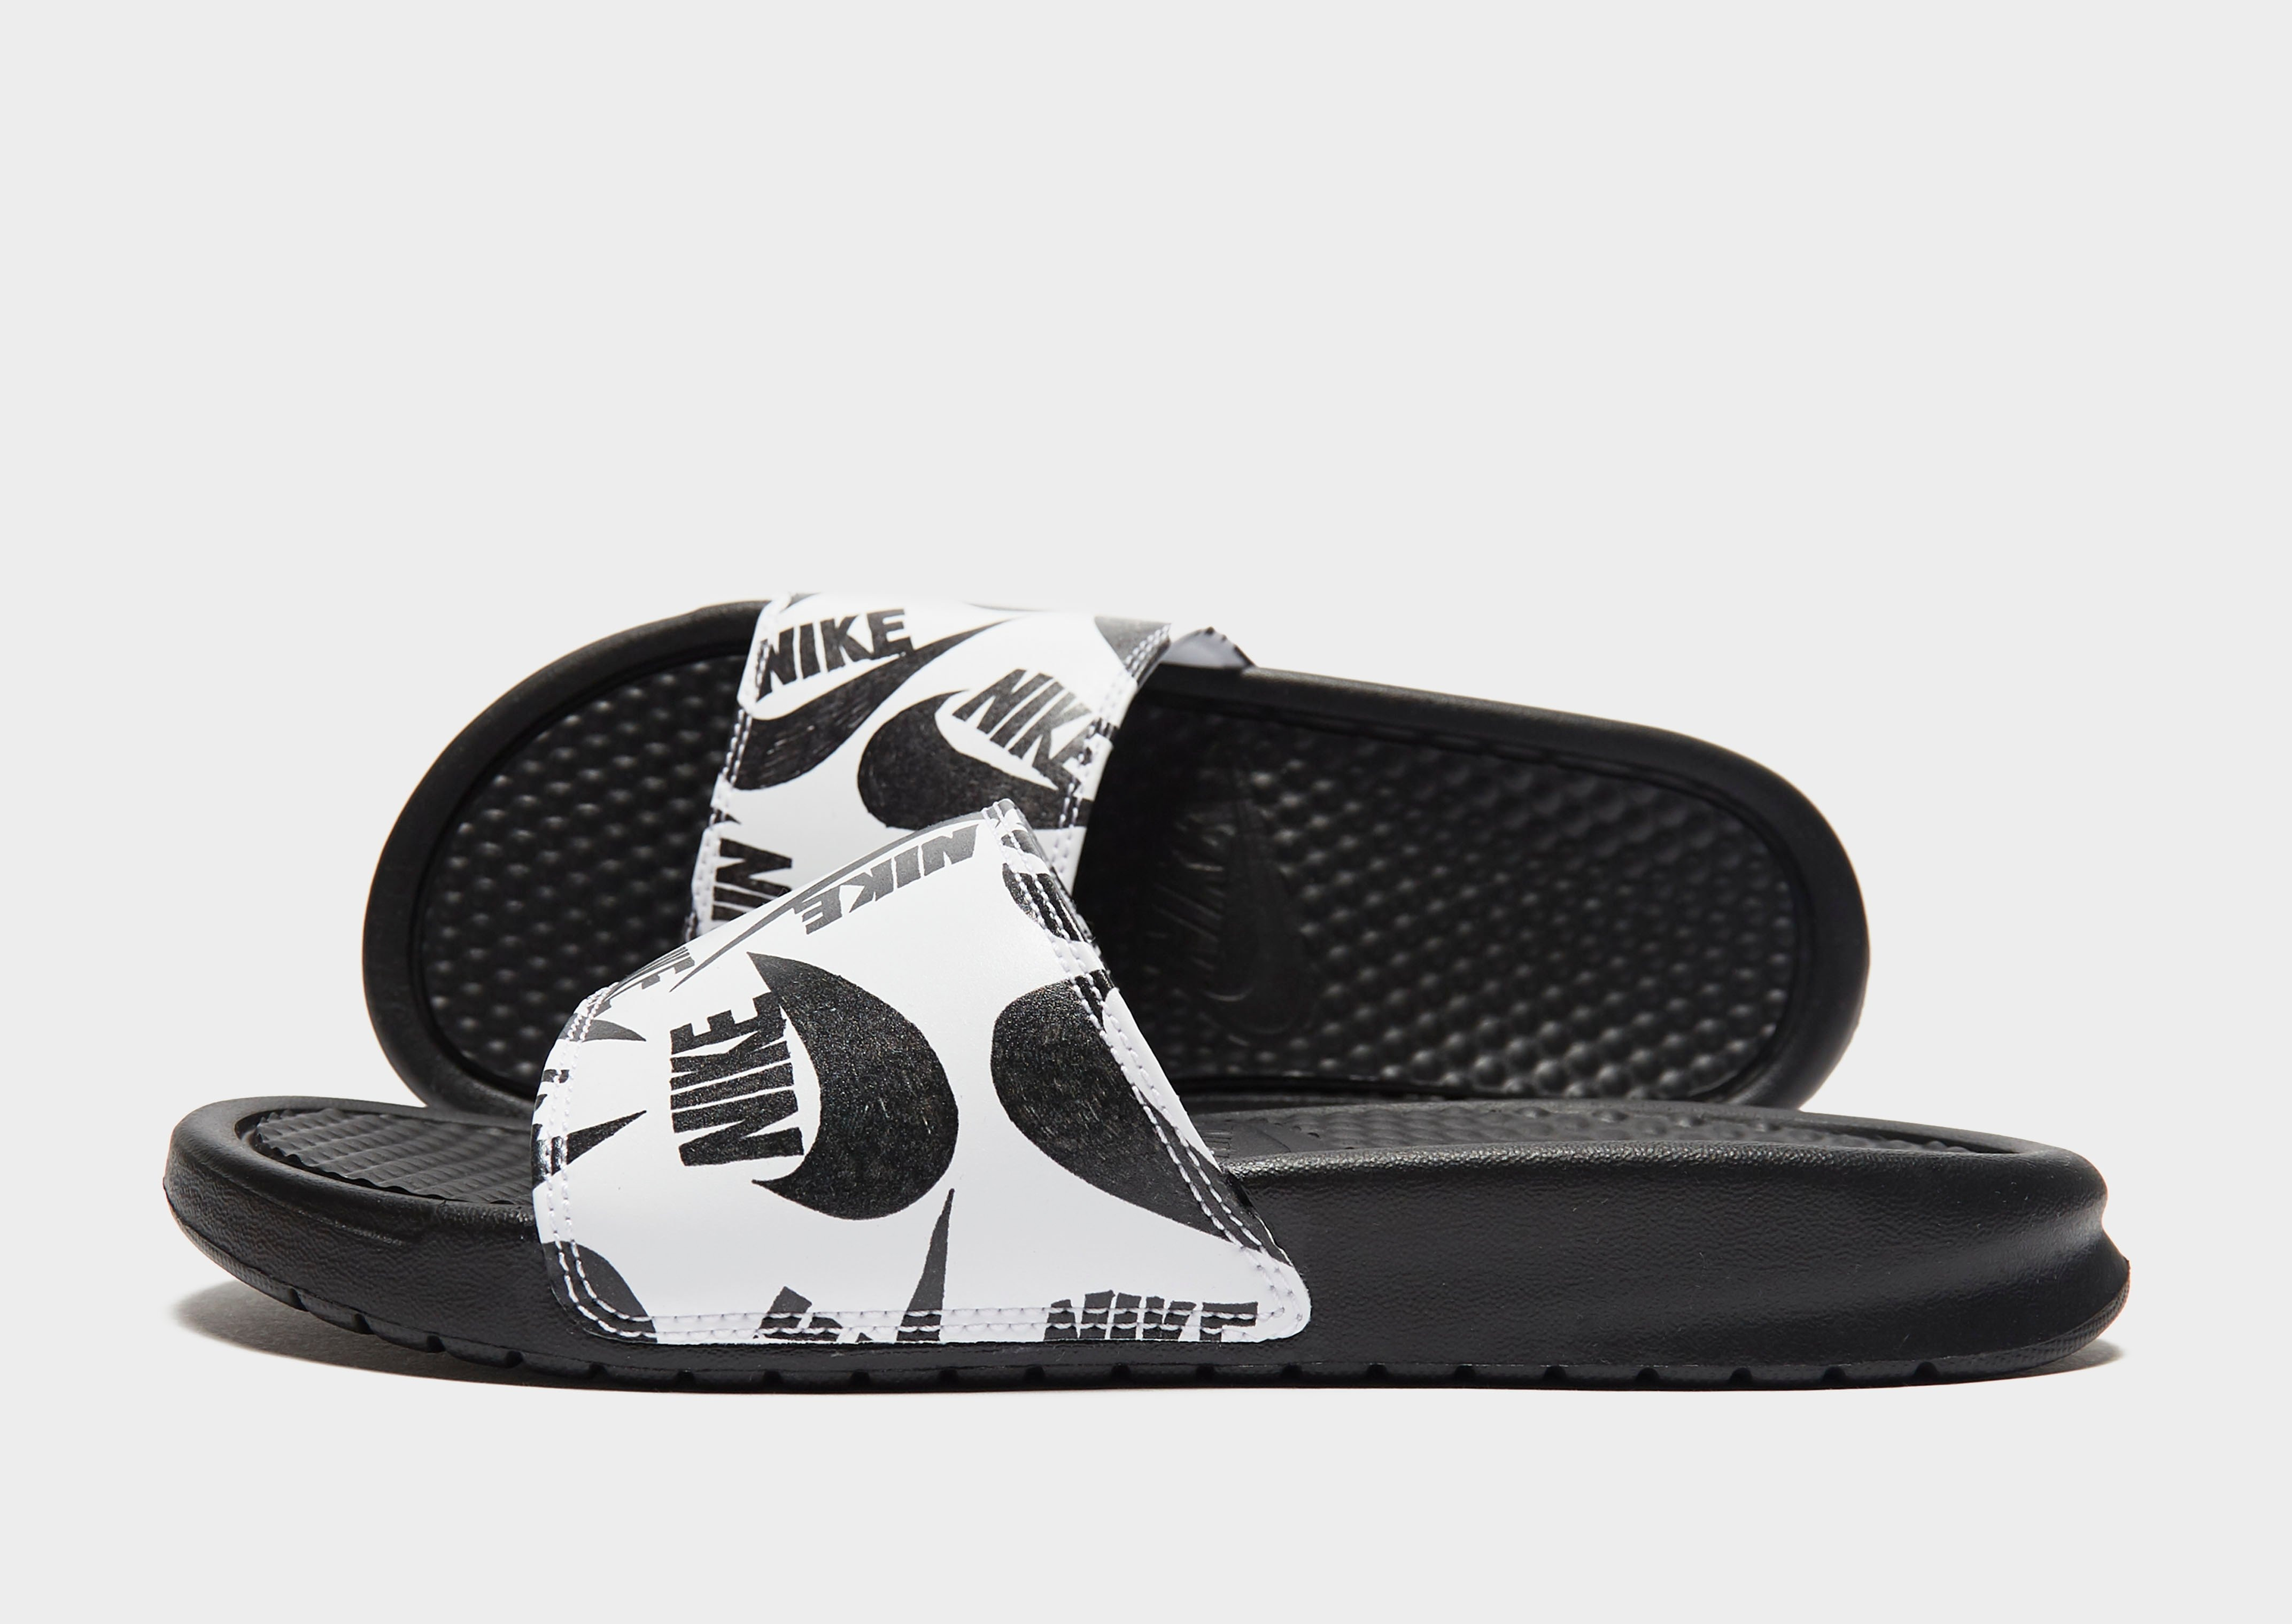 Nike Benassi Print Slides Women's | JD Sports